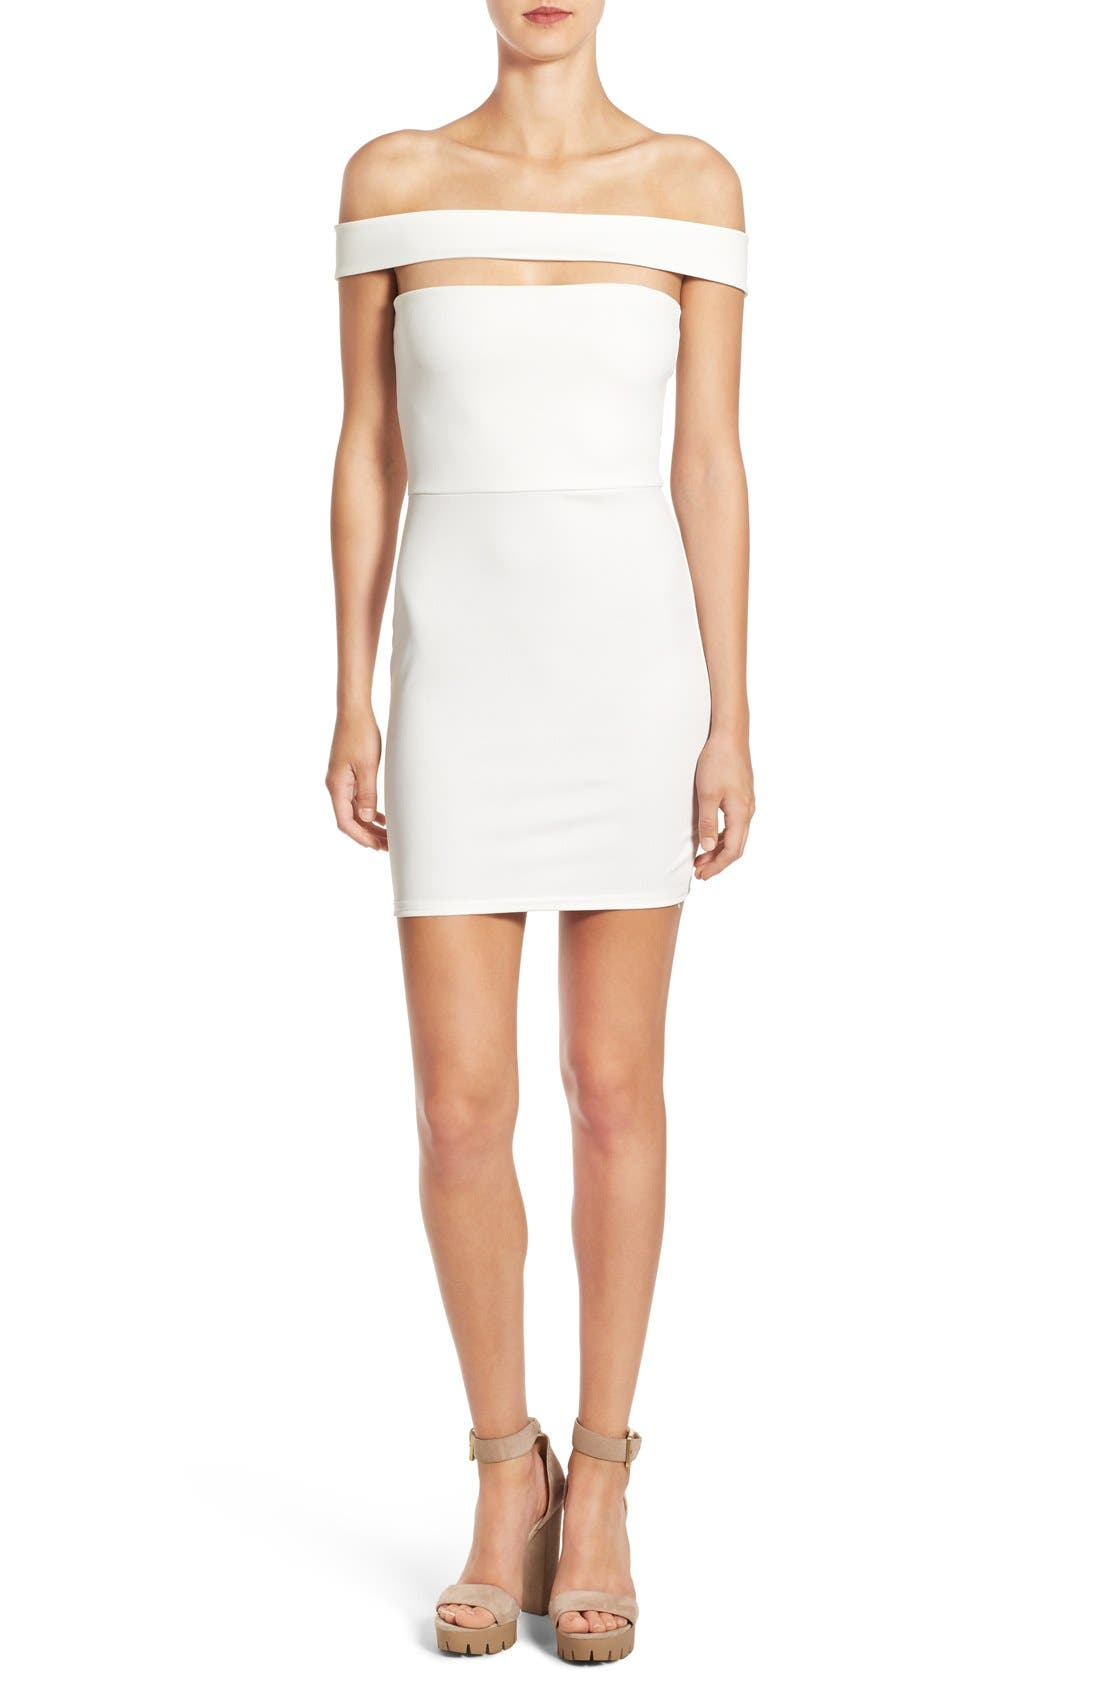 Alternate Image 1 Selected - Missguided Cutout Off the Shoulder Body-Con Dress